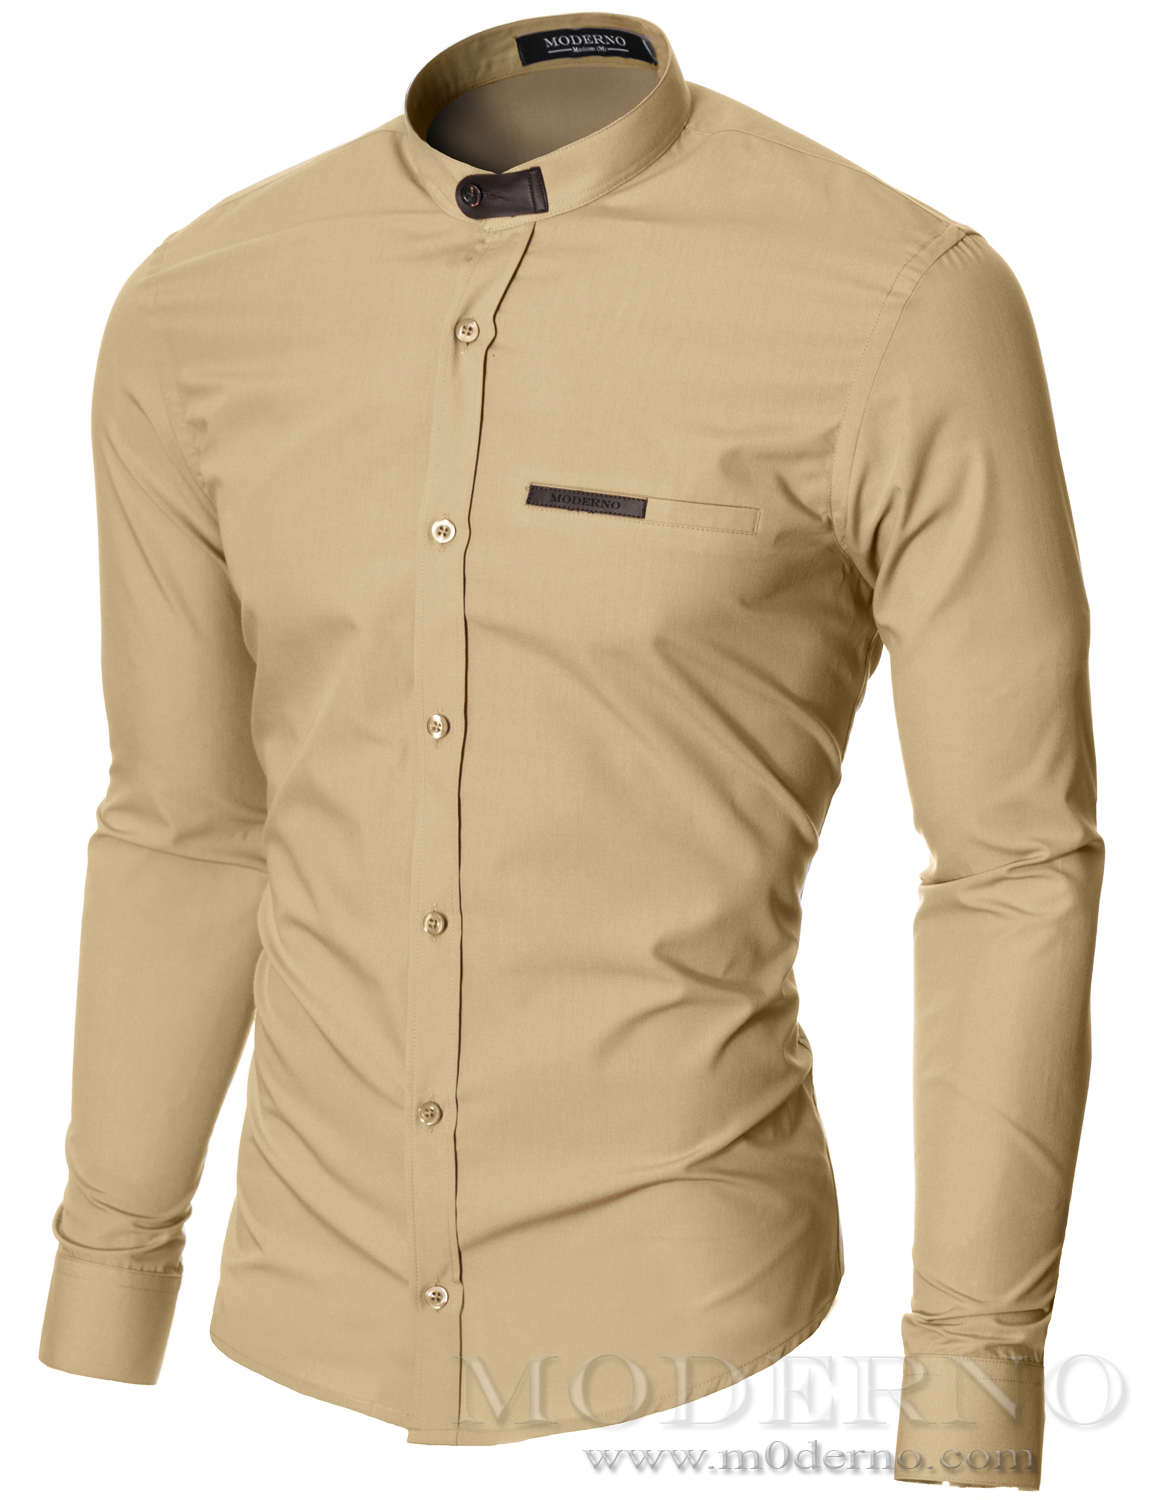 МОДЕРНО.KOM ЕООД Button-down shirts